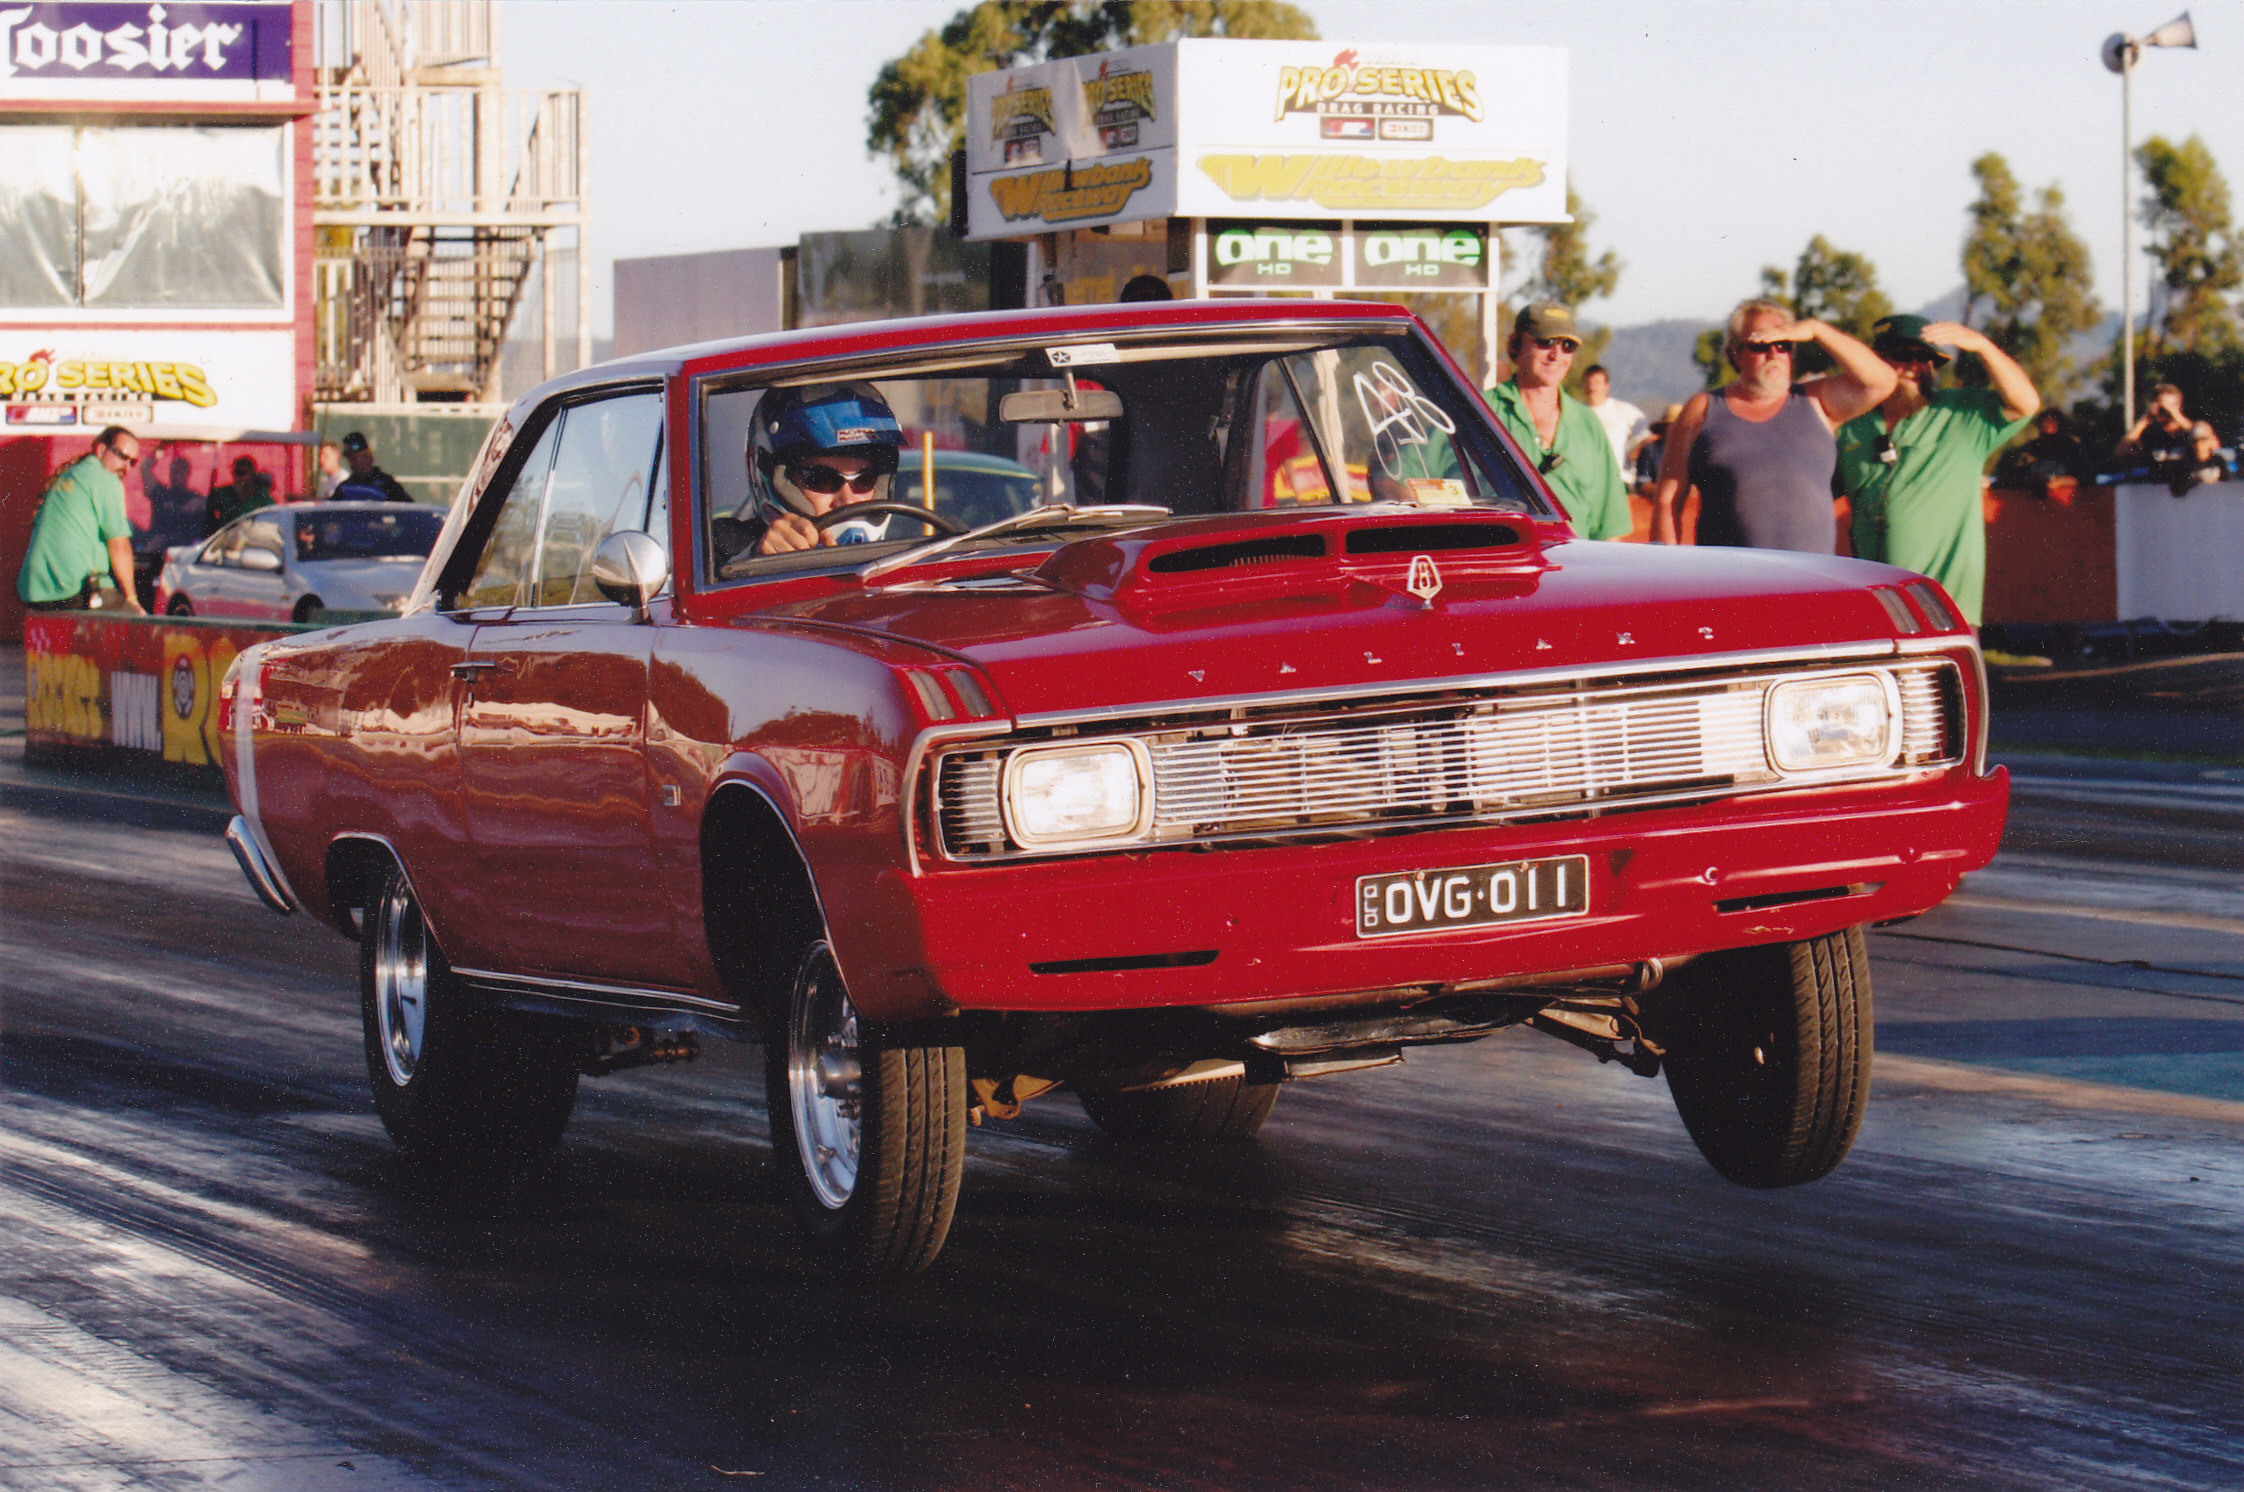 1970 Dodge Dart VG valiant coupe nitrous